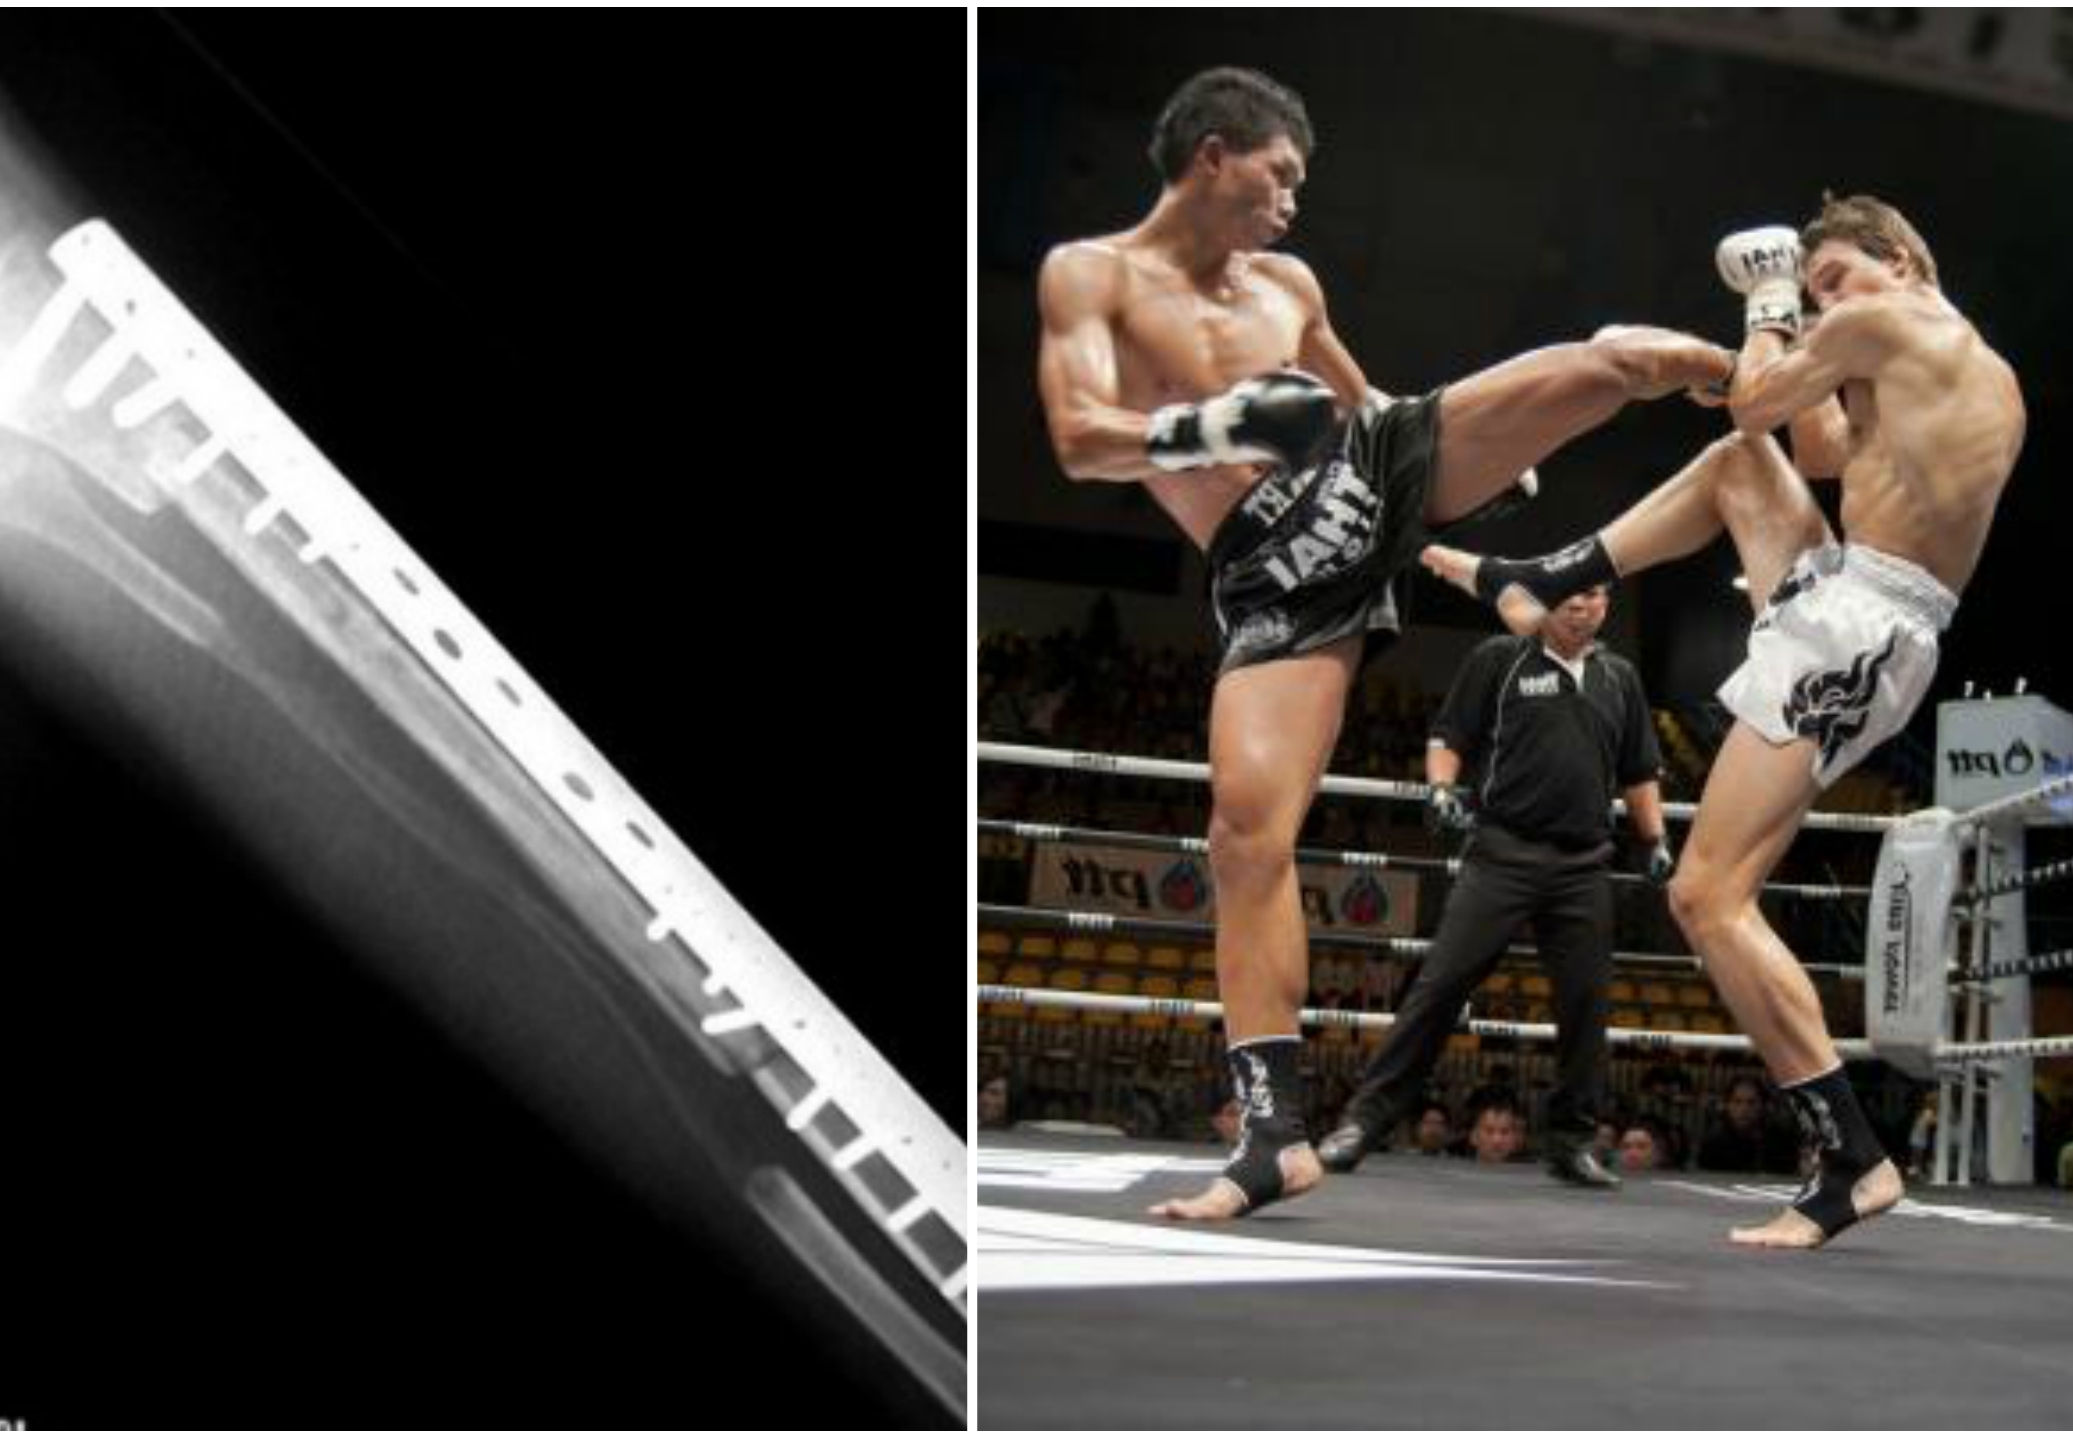 Muay Thai Fighter Suspended for Illegal Titanium Shin Implants